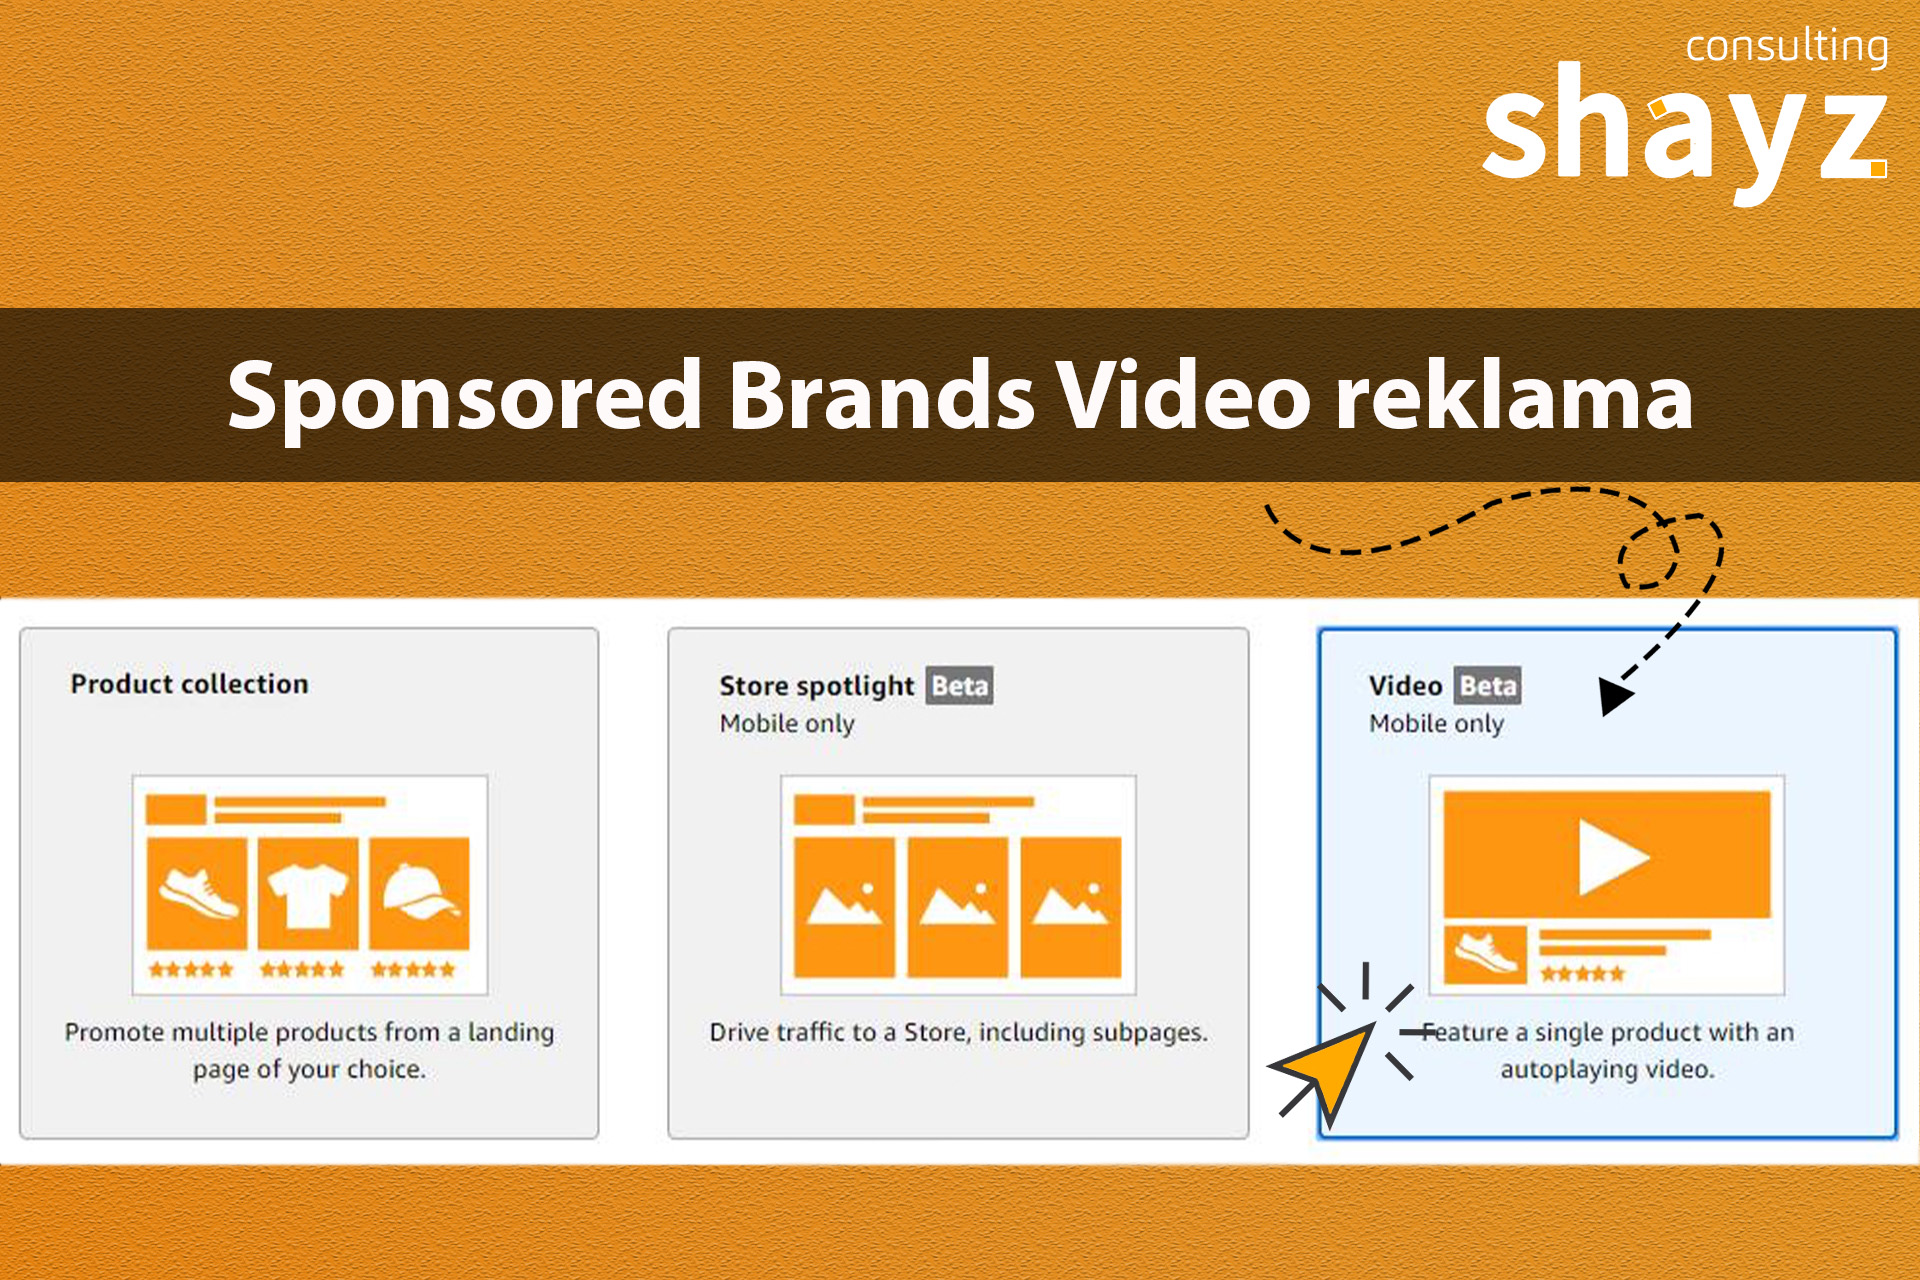 Sponsored Brands Video reklama